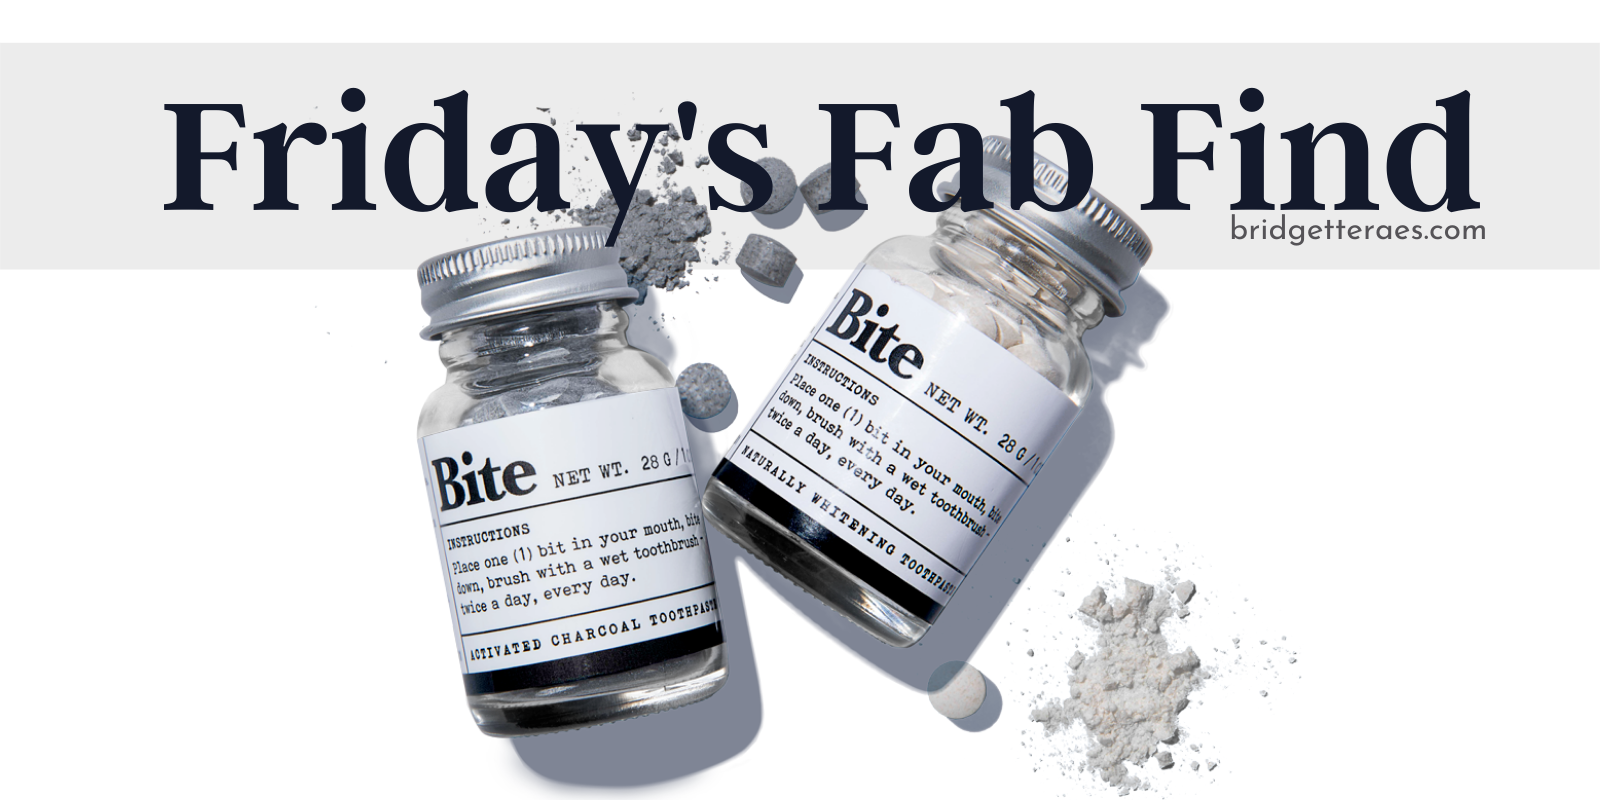 Friday's Fab Find: Bite Toothpaste Tablets